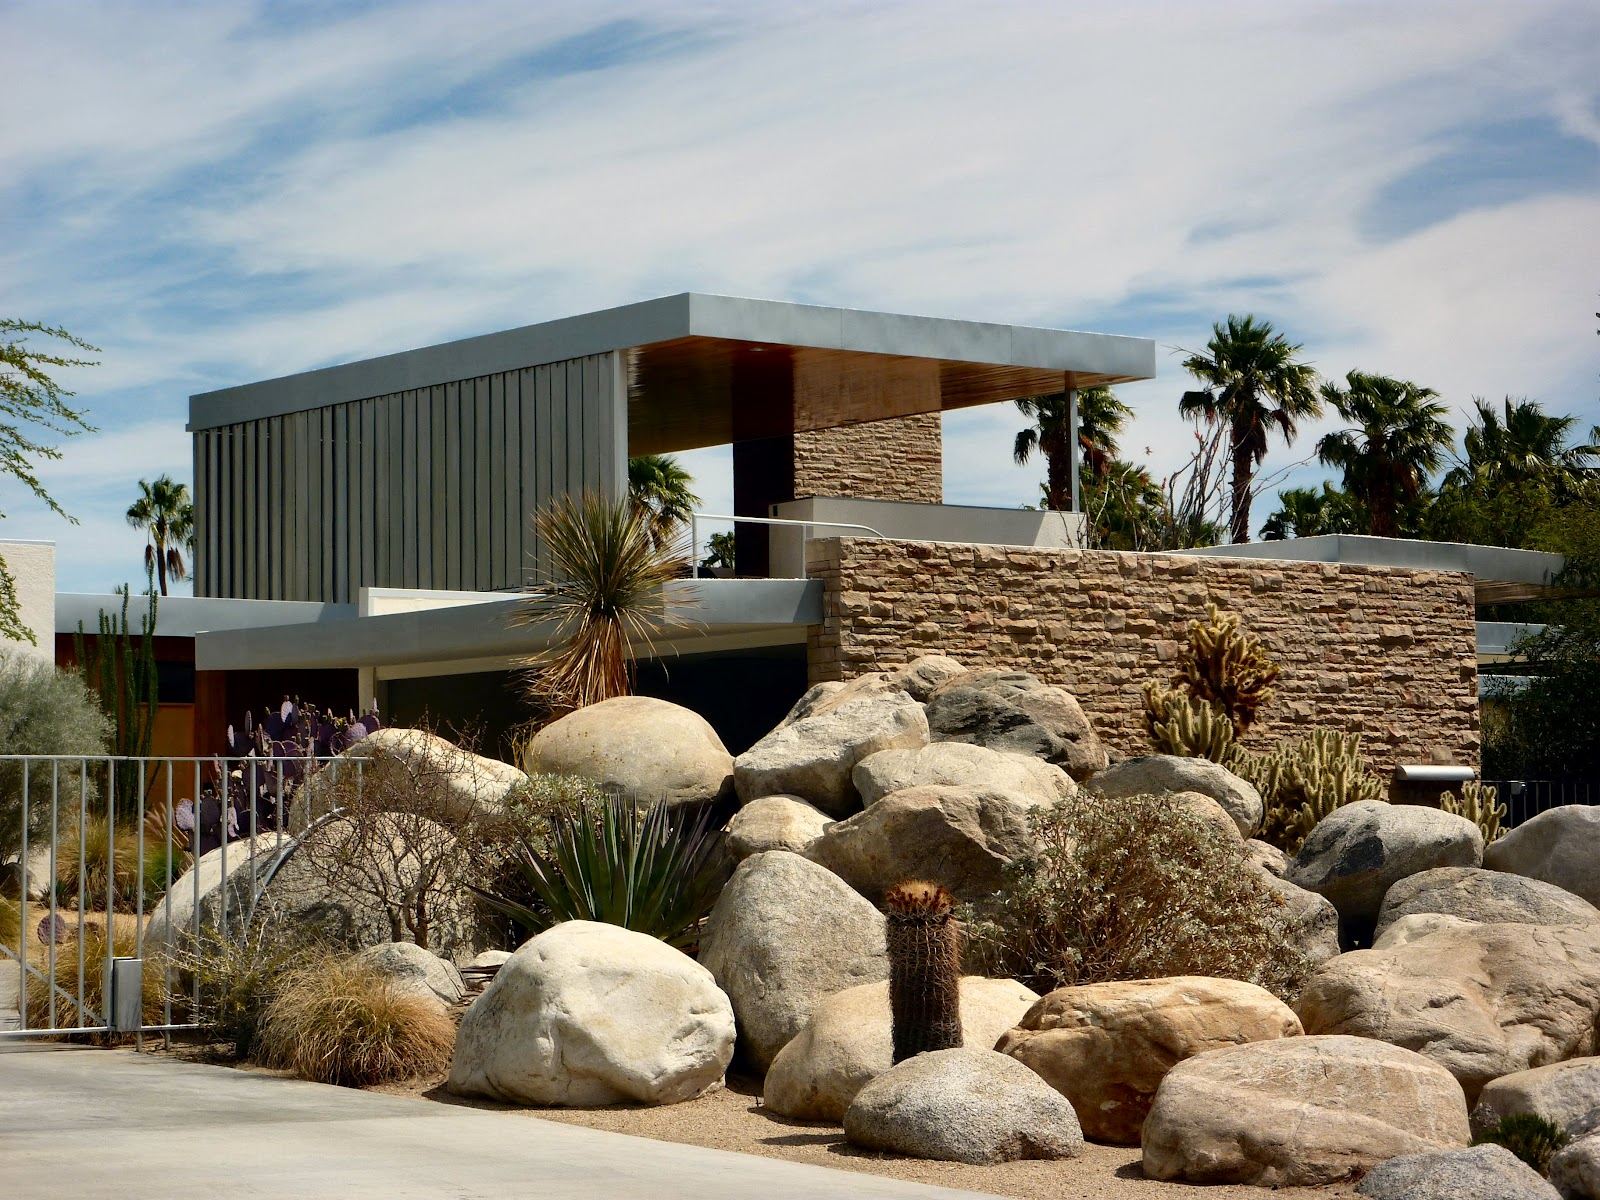 Palm Springs' Desert Modern Architecture